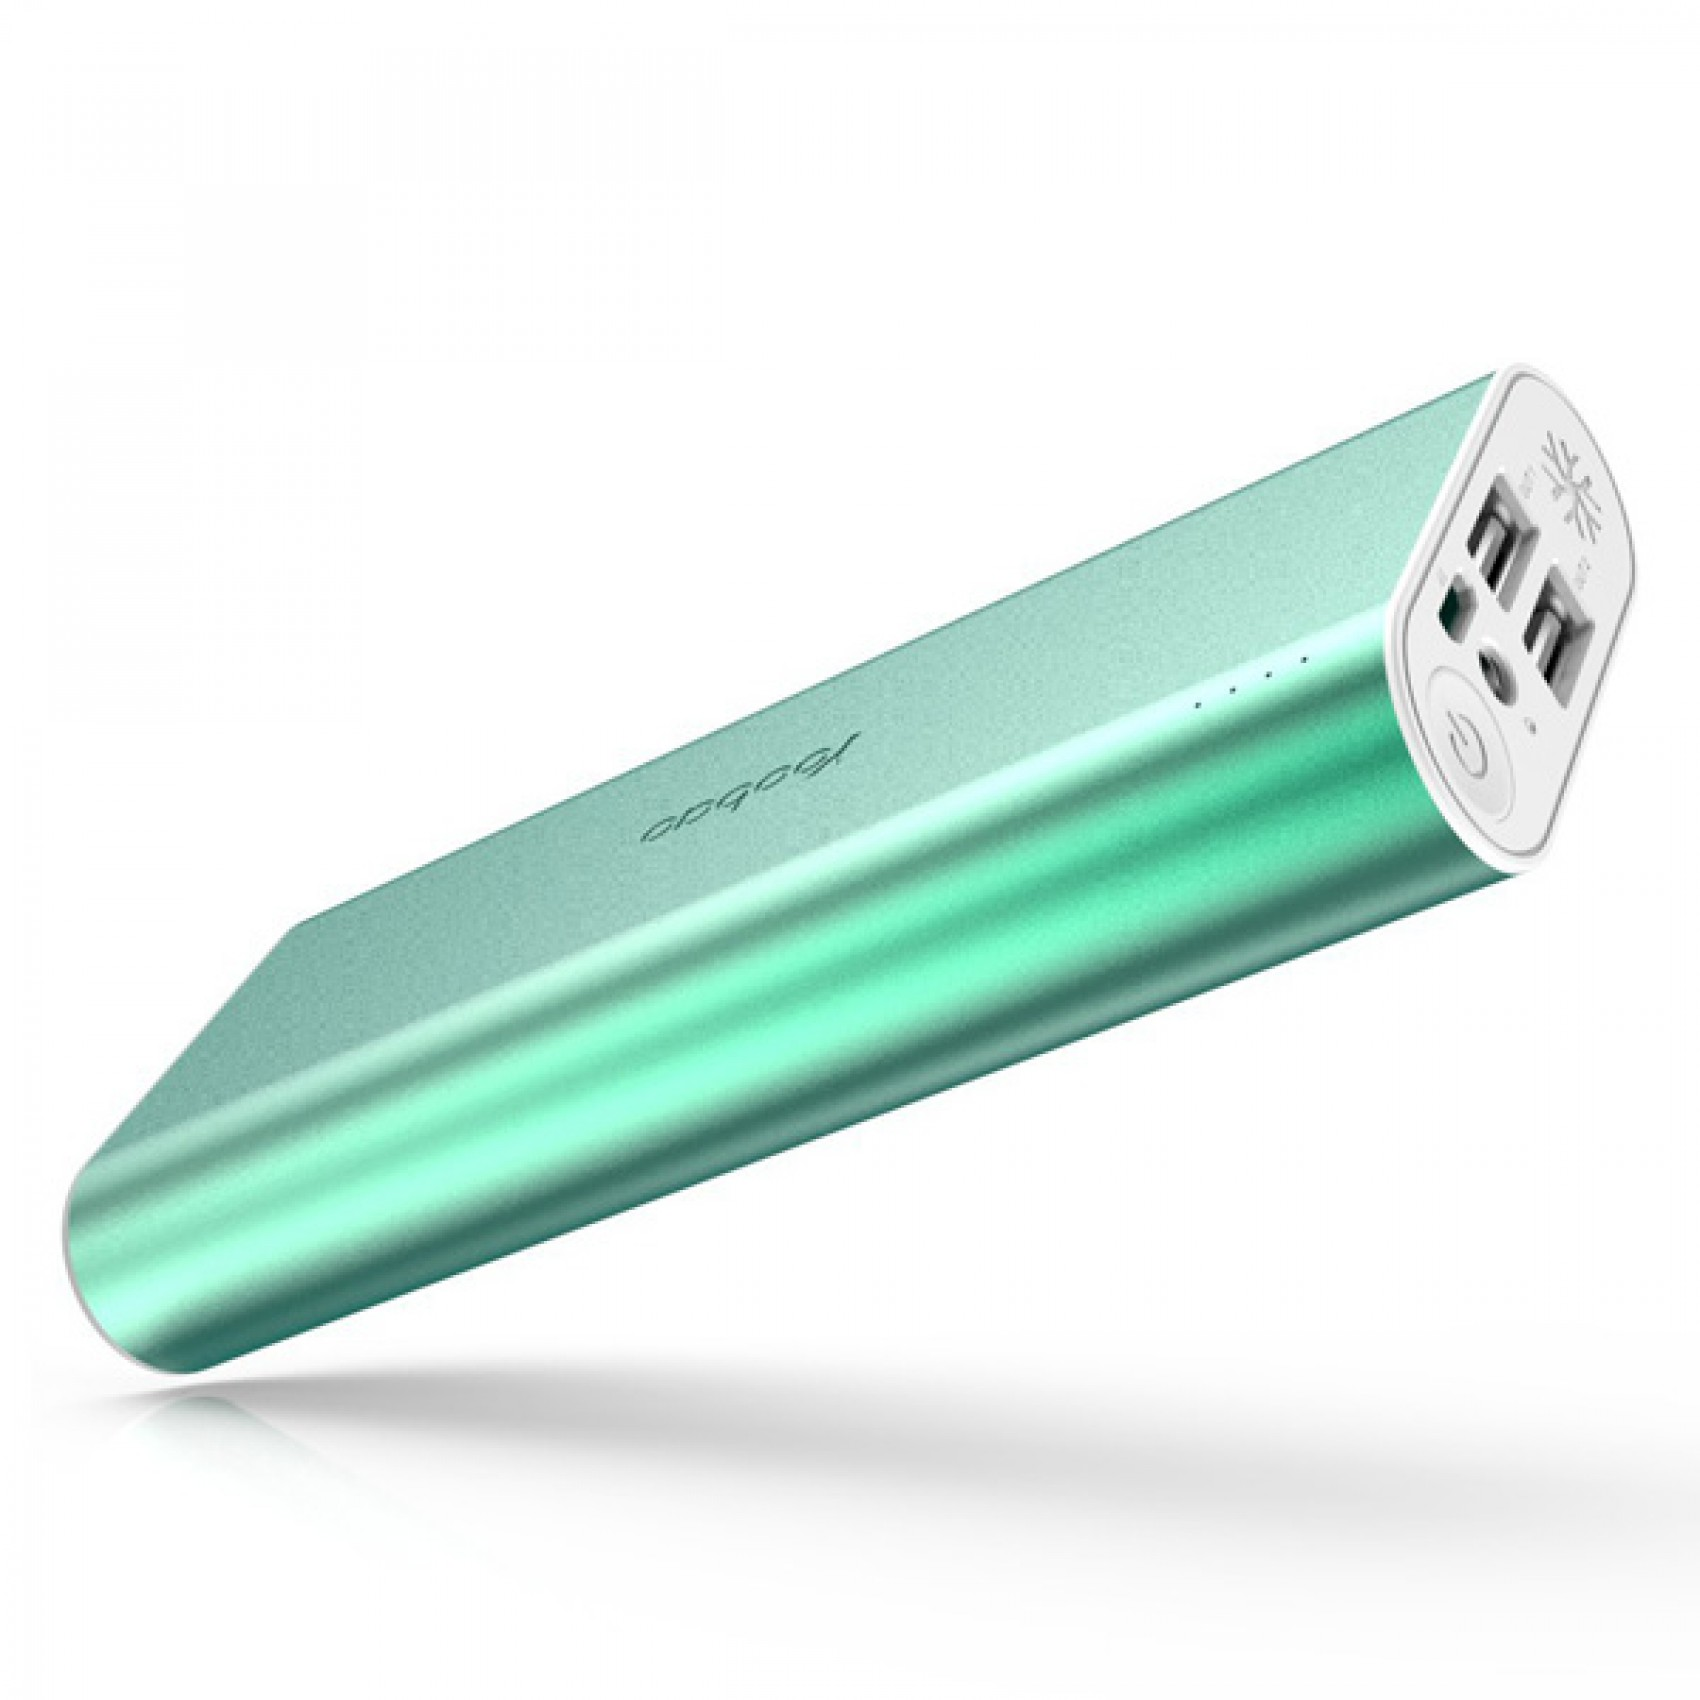 Yoobao Power Bank SP2 10000mAh Charger Dual USB Port - Green